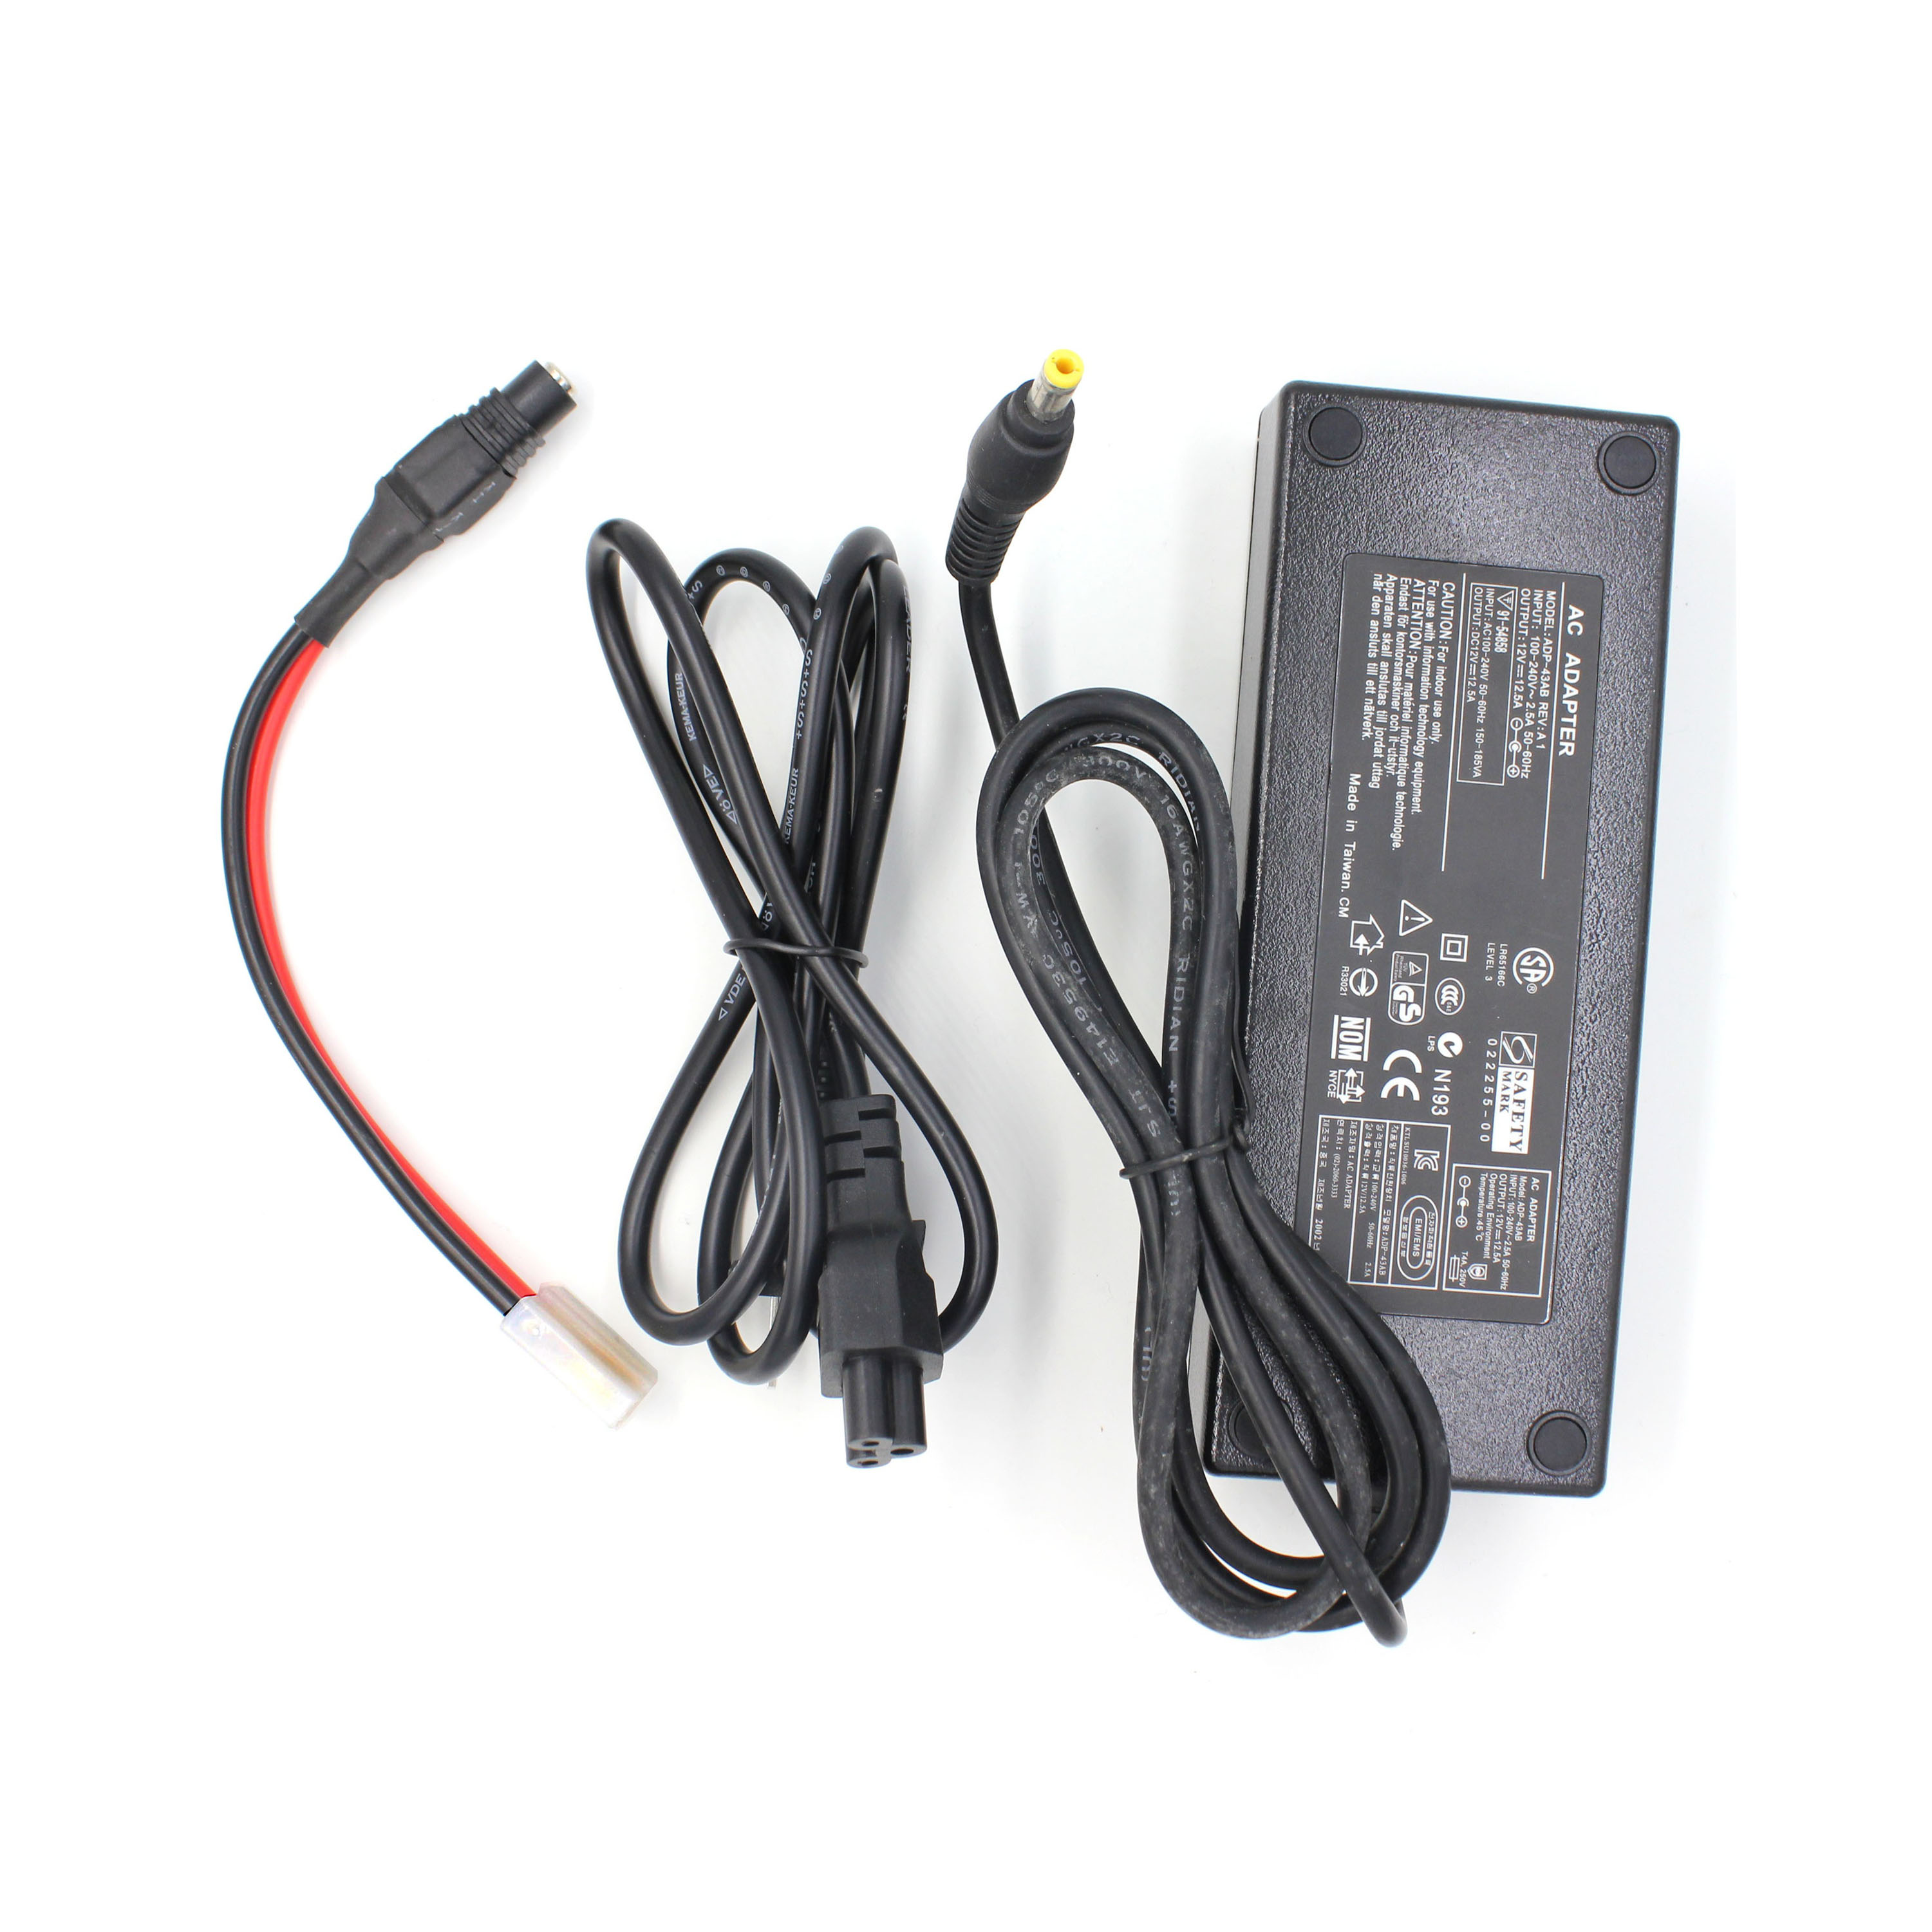 ANYSECU AC-125 12V 12.5A AC Adapter Power Supply  For Mobile Car Radio TH-9800 TH-9000D TH-7800 TH-8600 KT-780 Plus KT-980 Plus